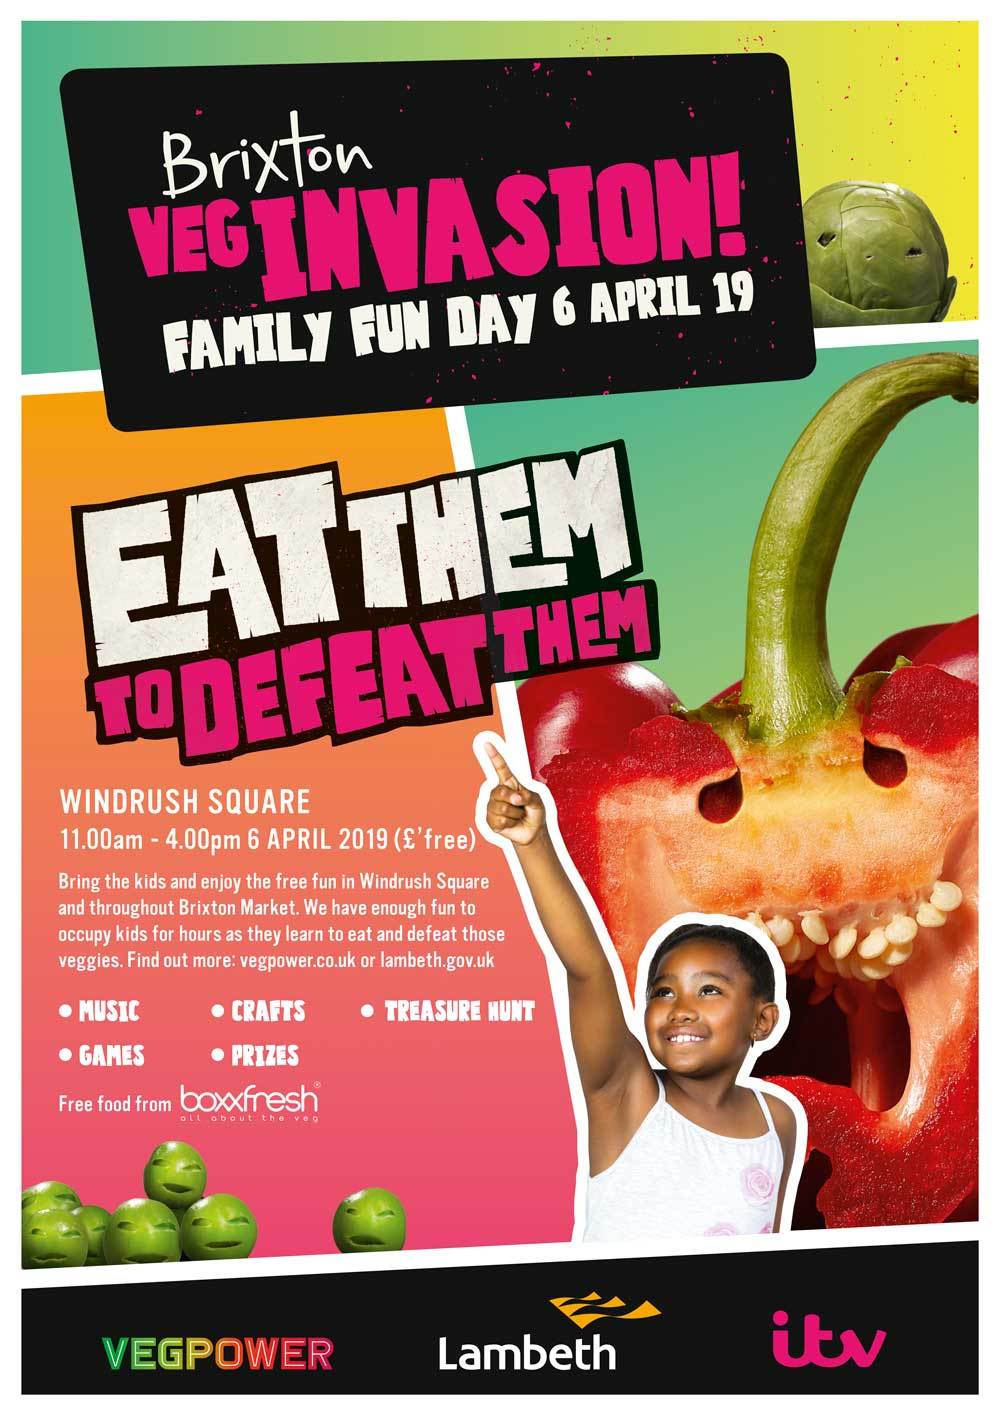 Poster for Veg Invasion family fun day 6 April Windrush Square